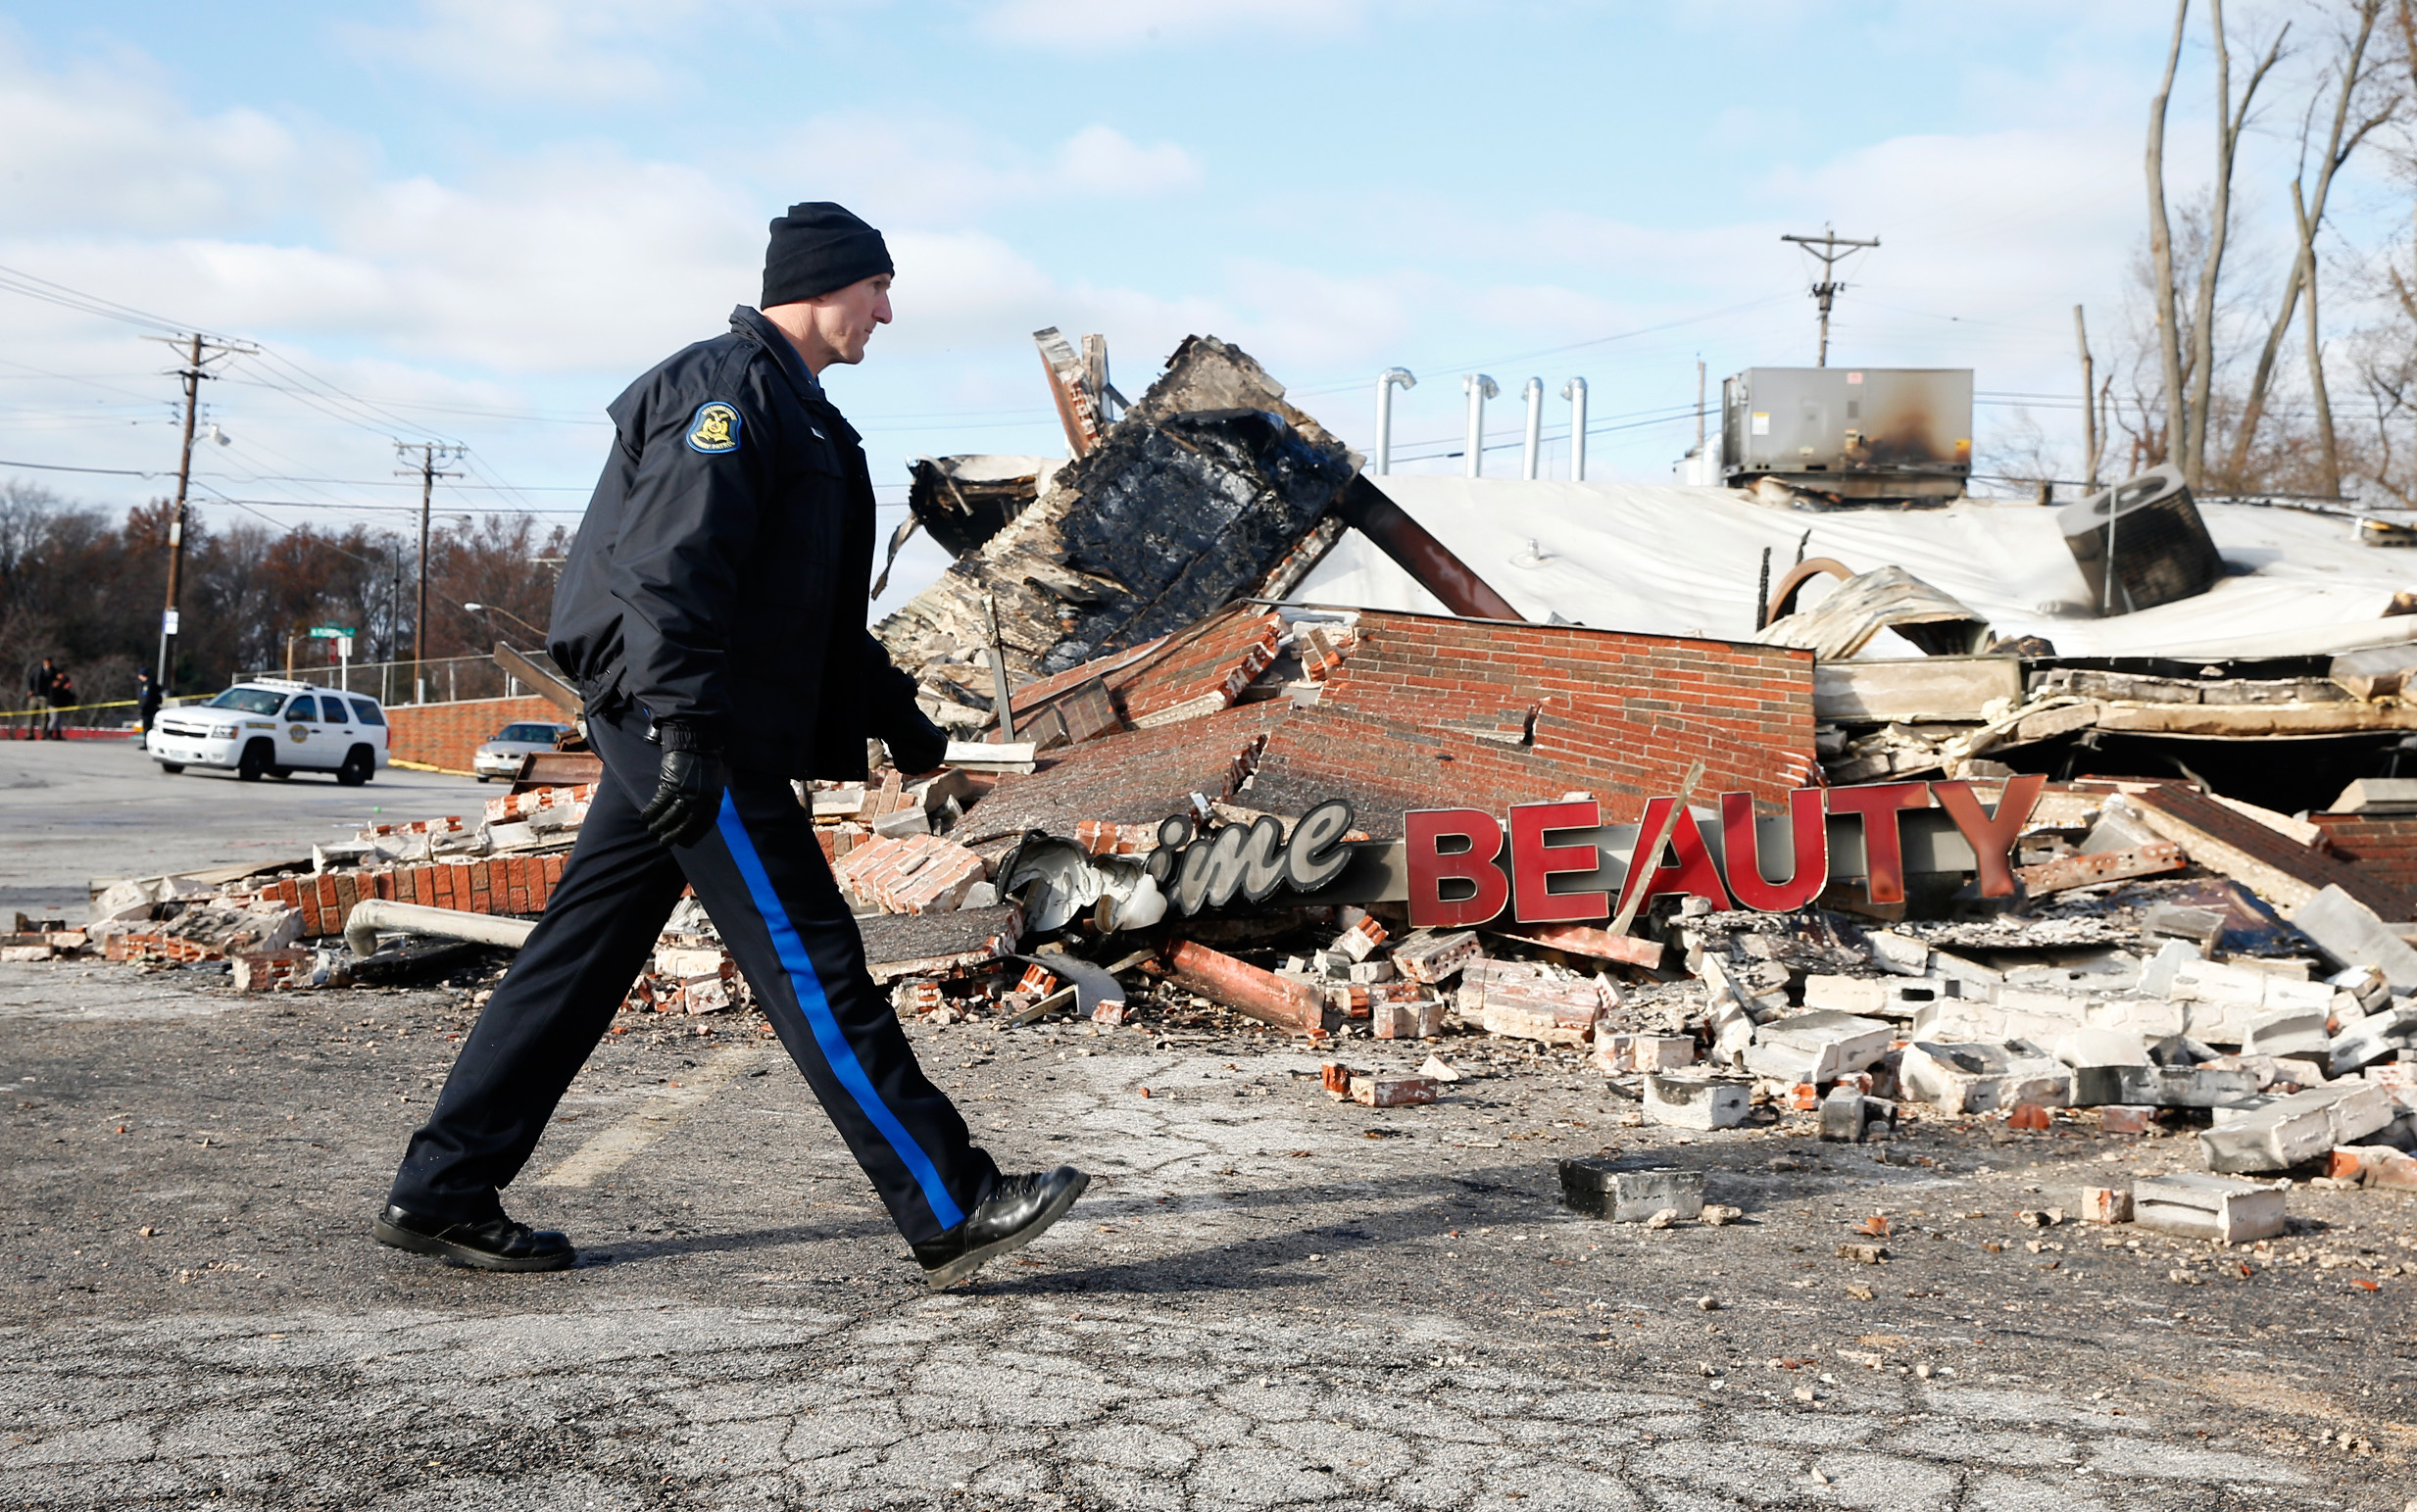 A police officer looks over the site of a building that was burned in riots the previous night in Ferguson